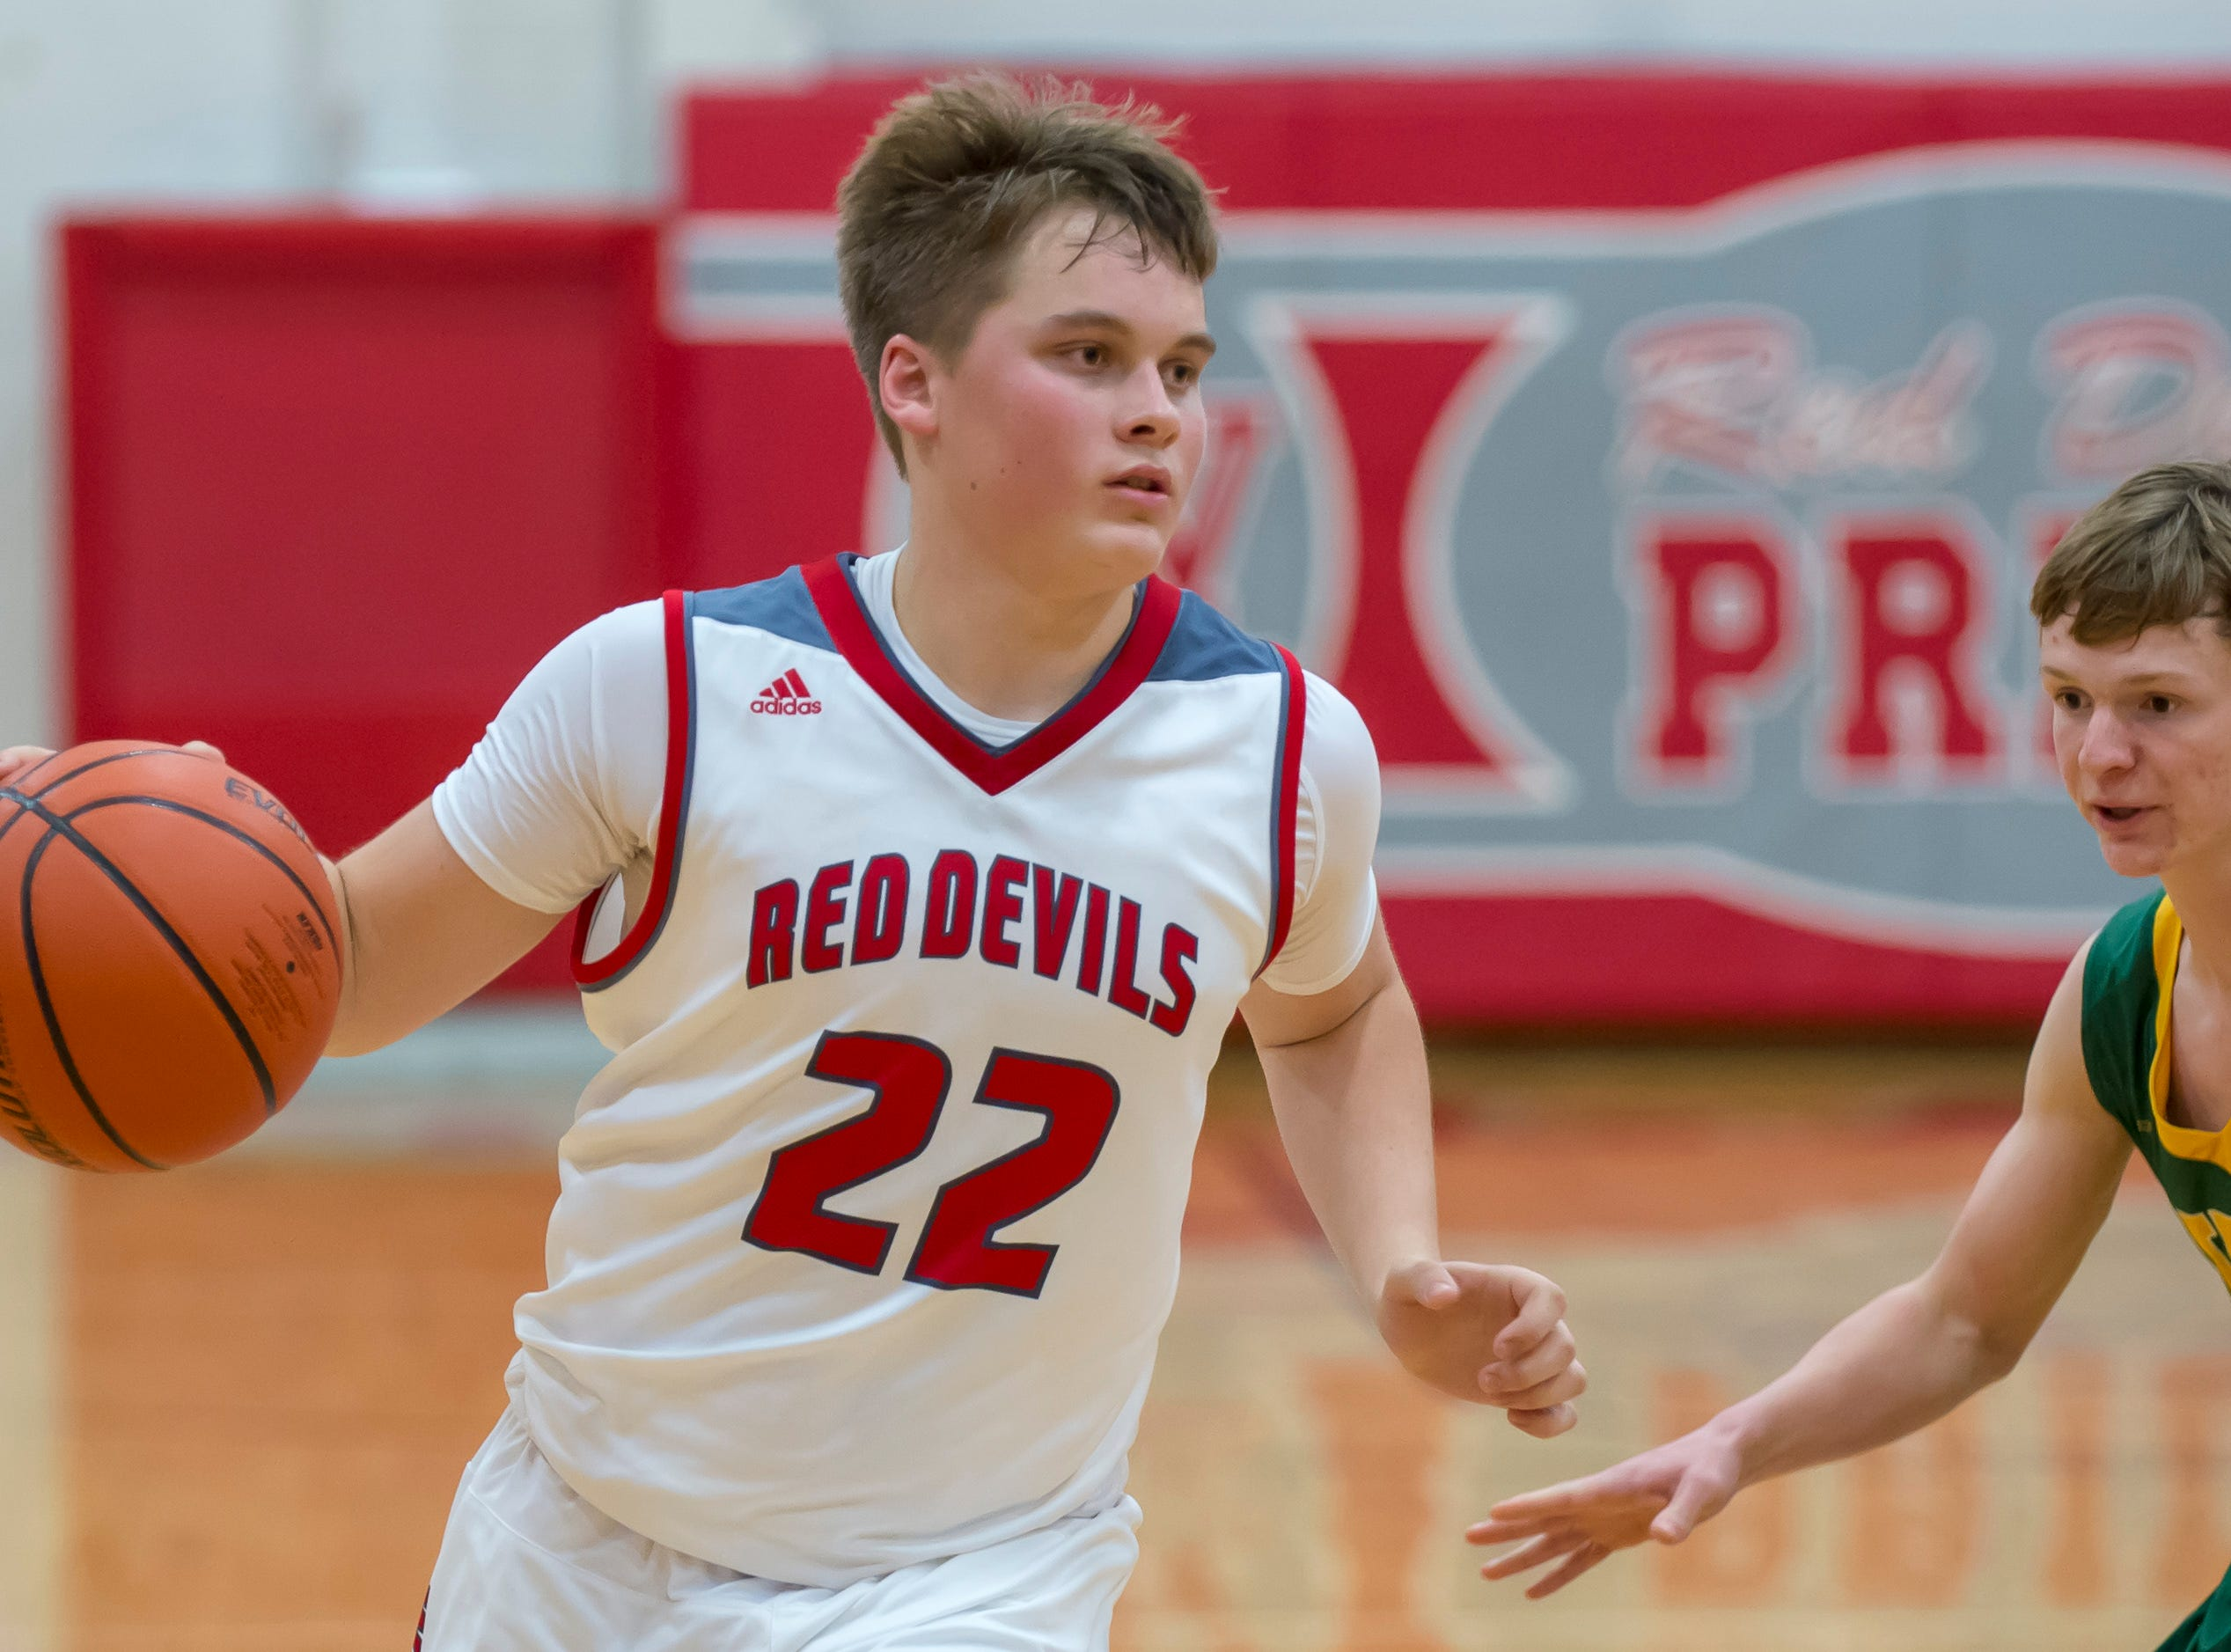 Colin Martin leads the Red Devil offensive down the court early in the Benton Central at West Lafayette basketball game on December 14, 2018